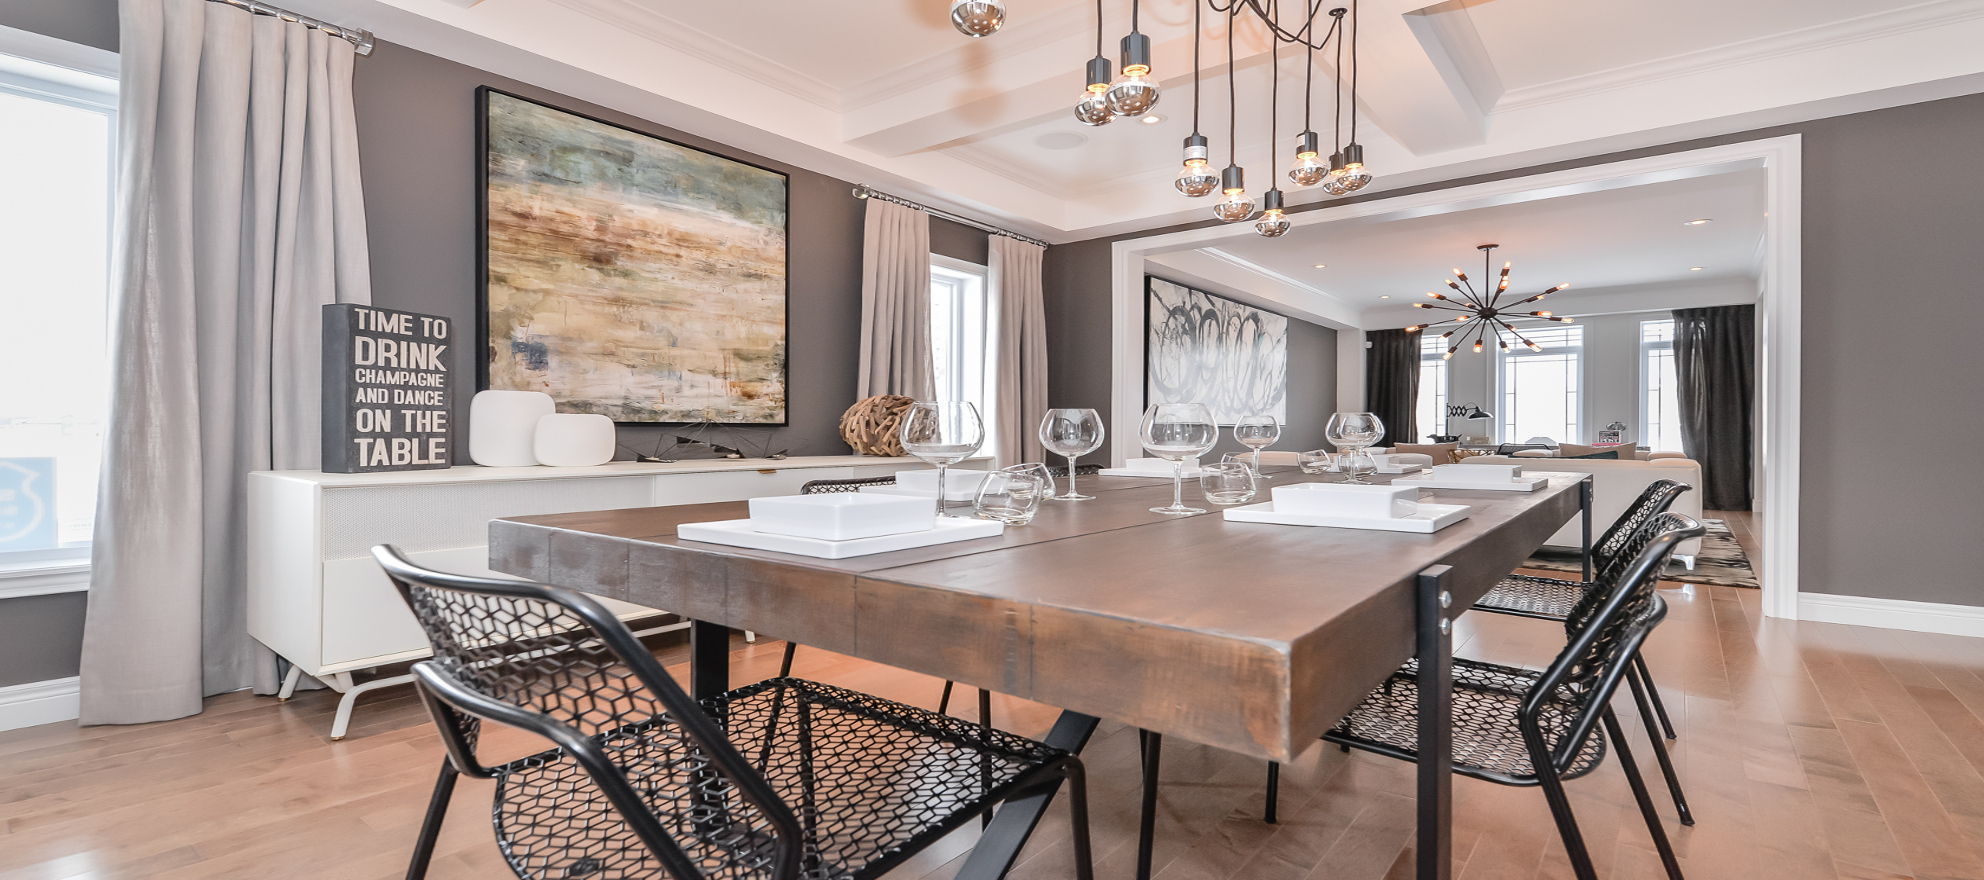 3-D home of the day: Timeless elegance